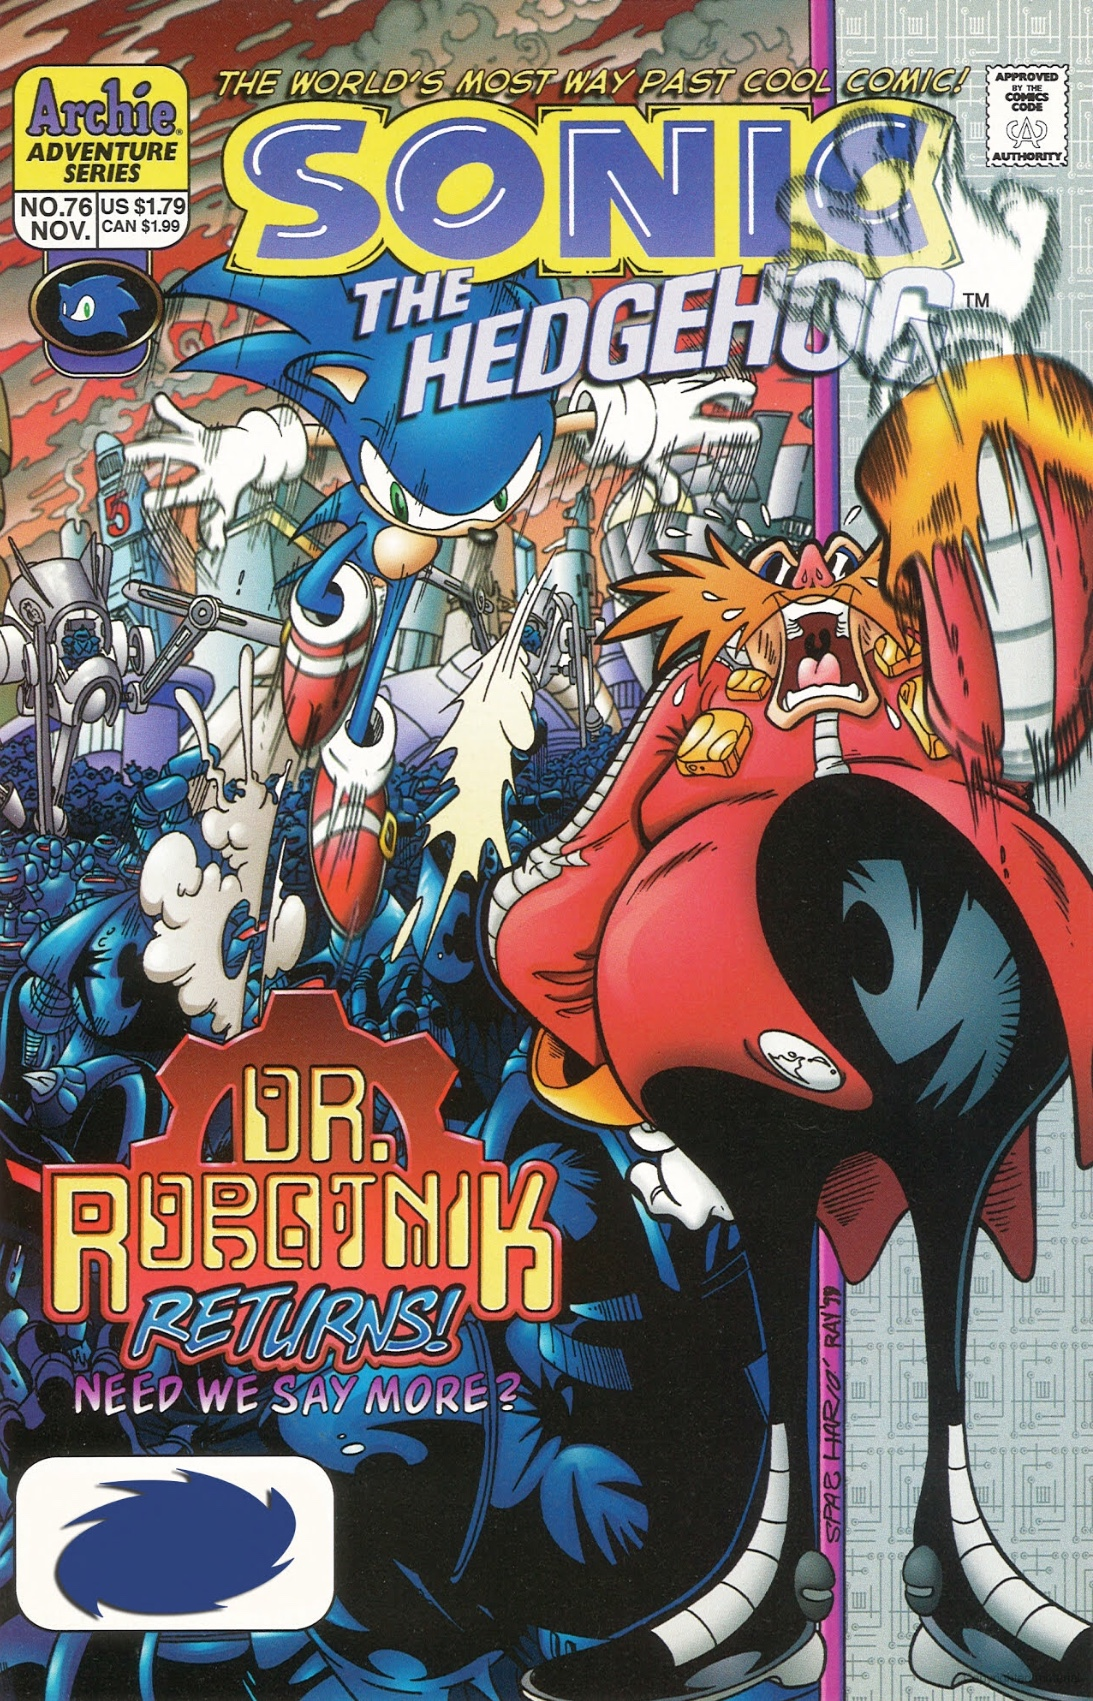 File:Archie Sonic the Hedgehog Issue 76.jpg